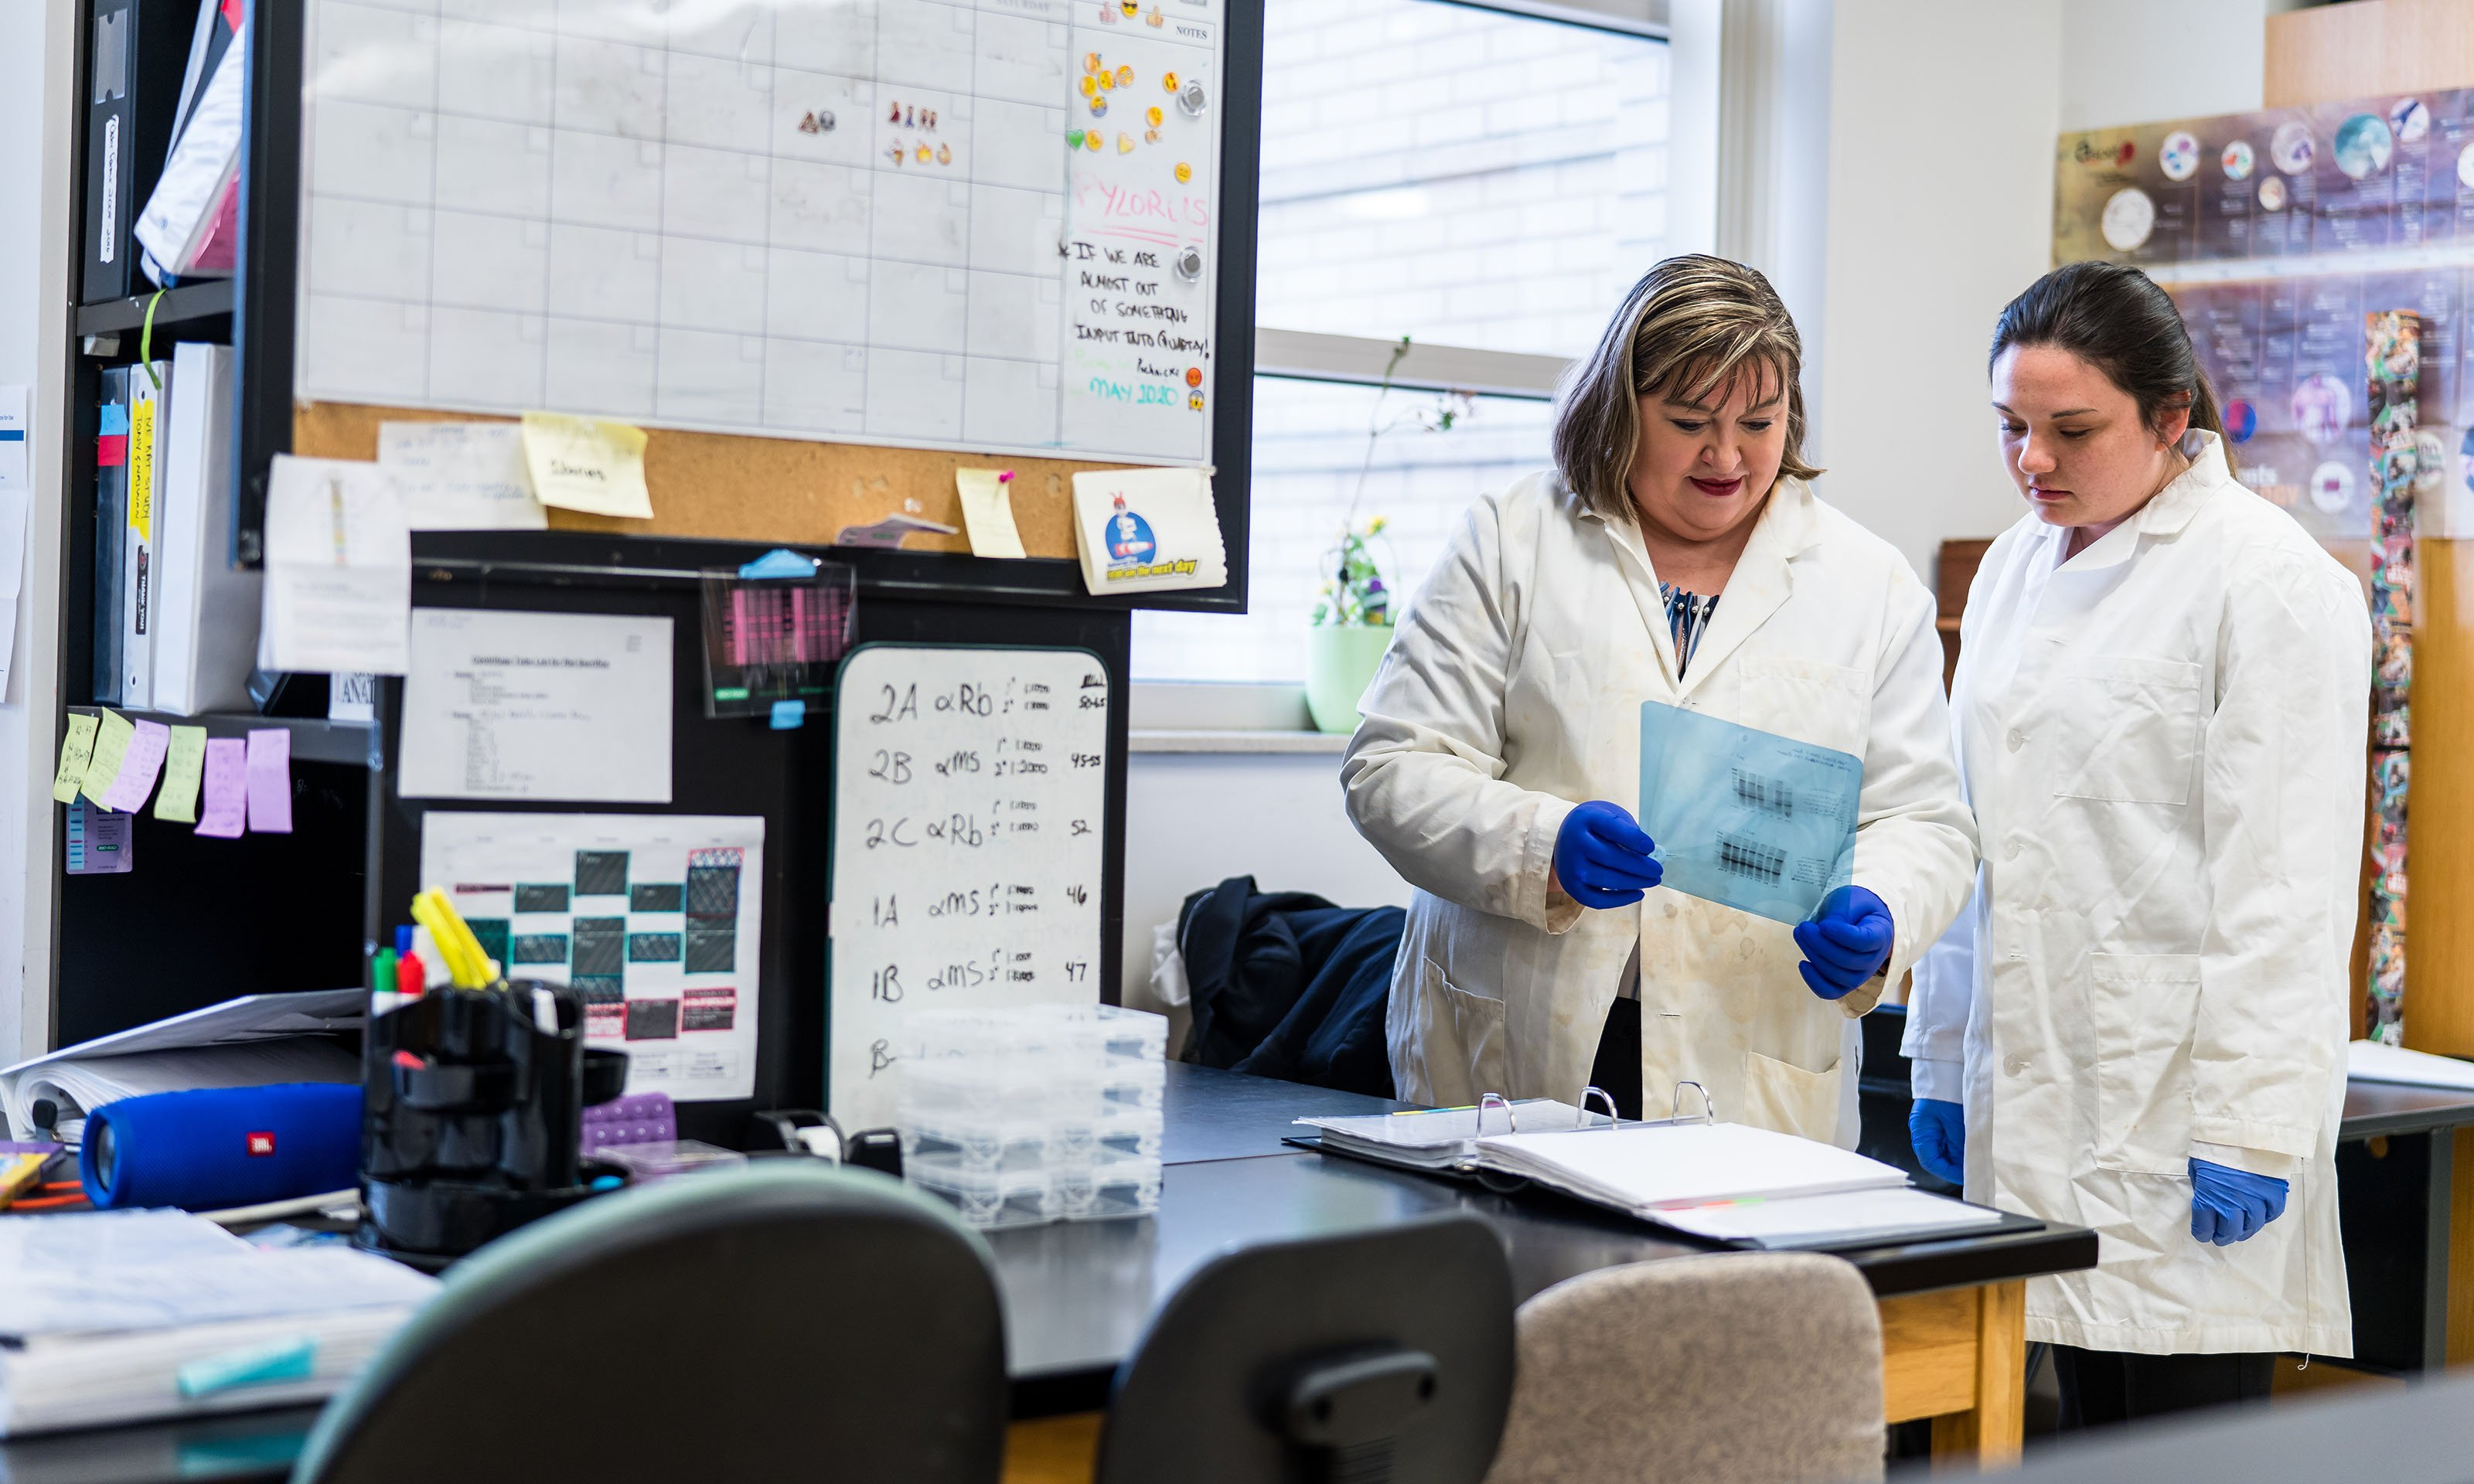 Female mentor in lab coat holds out lab slide to female student in lab coat, in biomedical science lab.